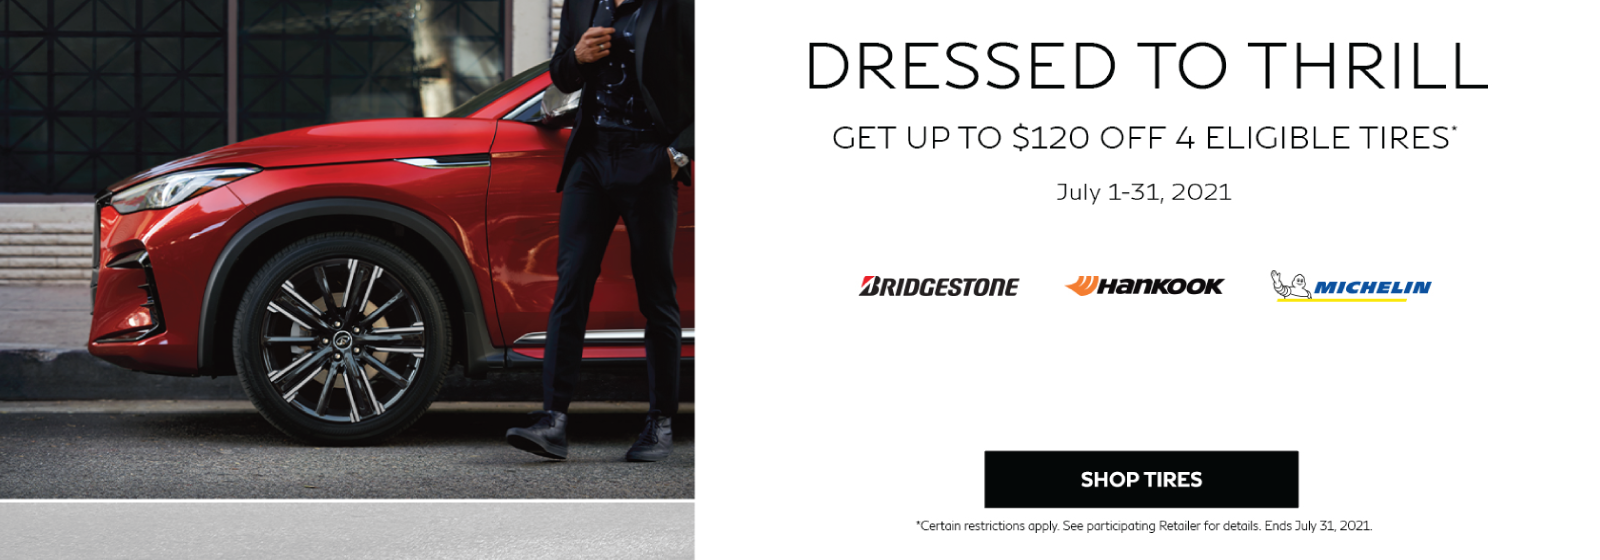 Dressed to Thril. Get up to $120 off 4 eligible tires July 1-31, 2021. See retailer for details. Offer ends 7/31/21.